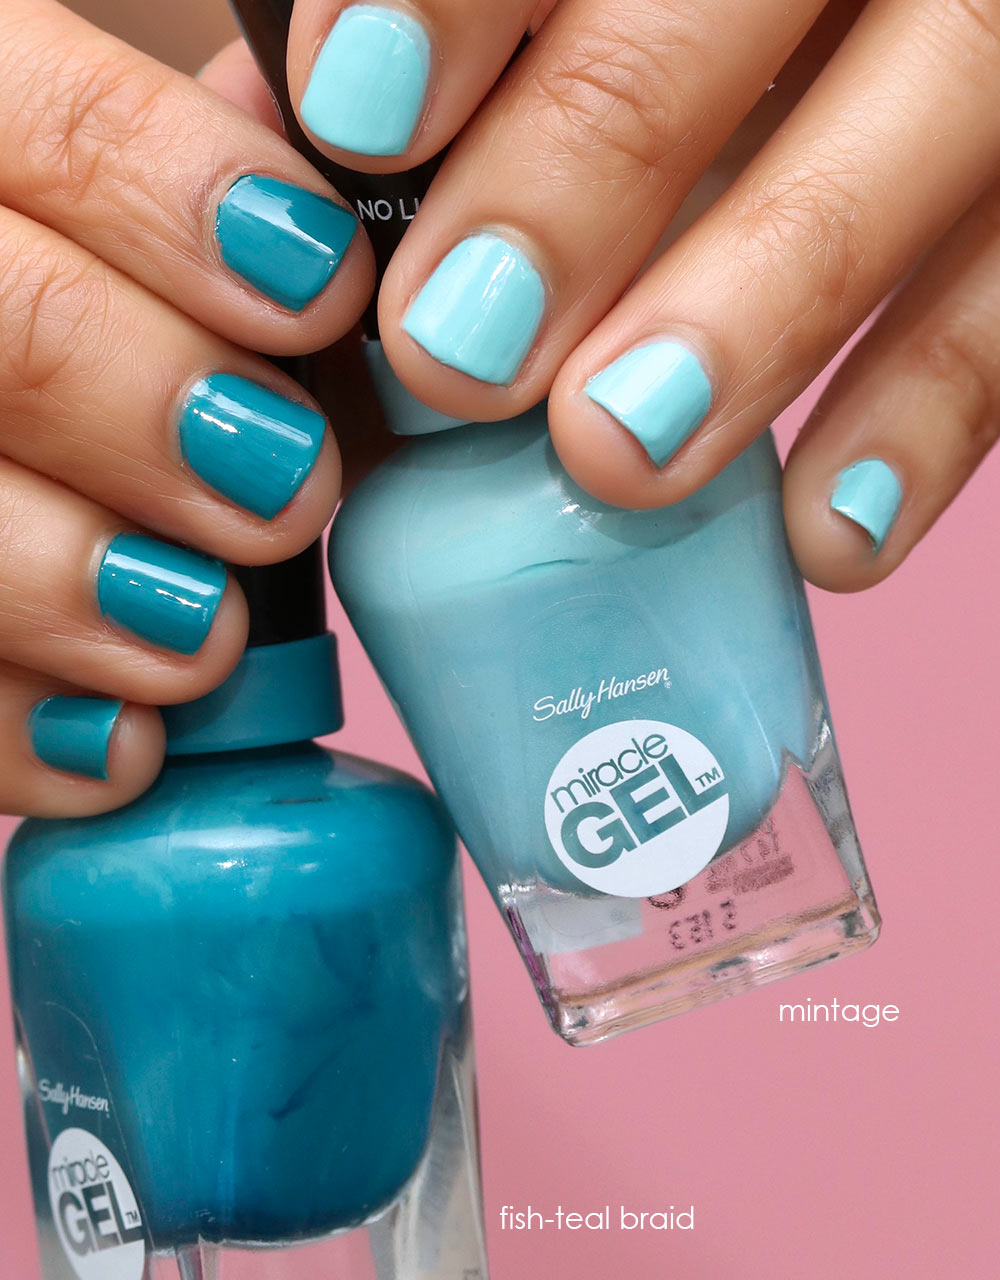 sally hansen miracle gel fish teal braid mintage